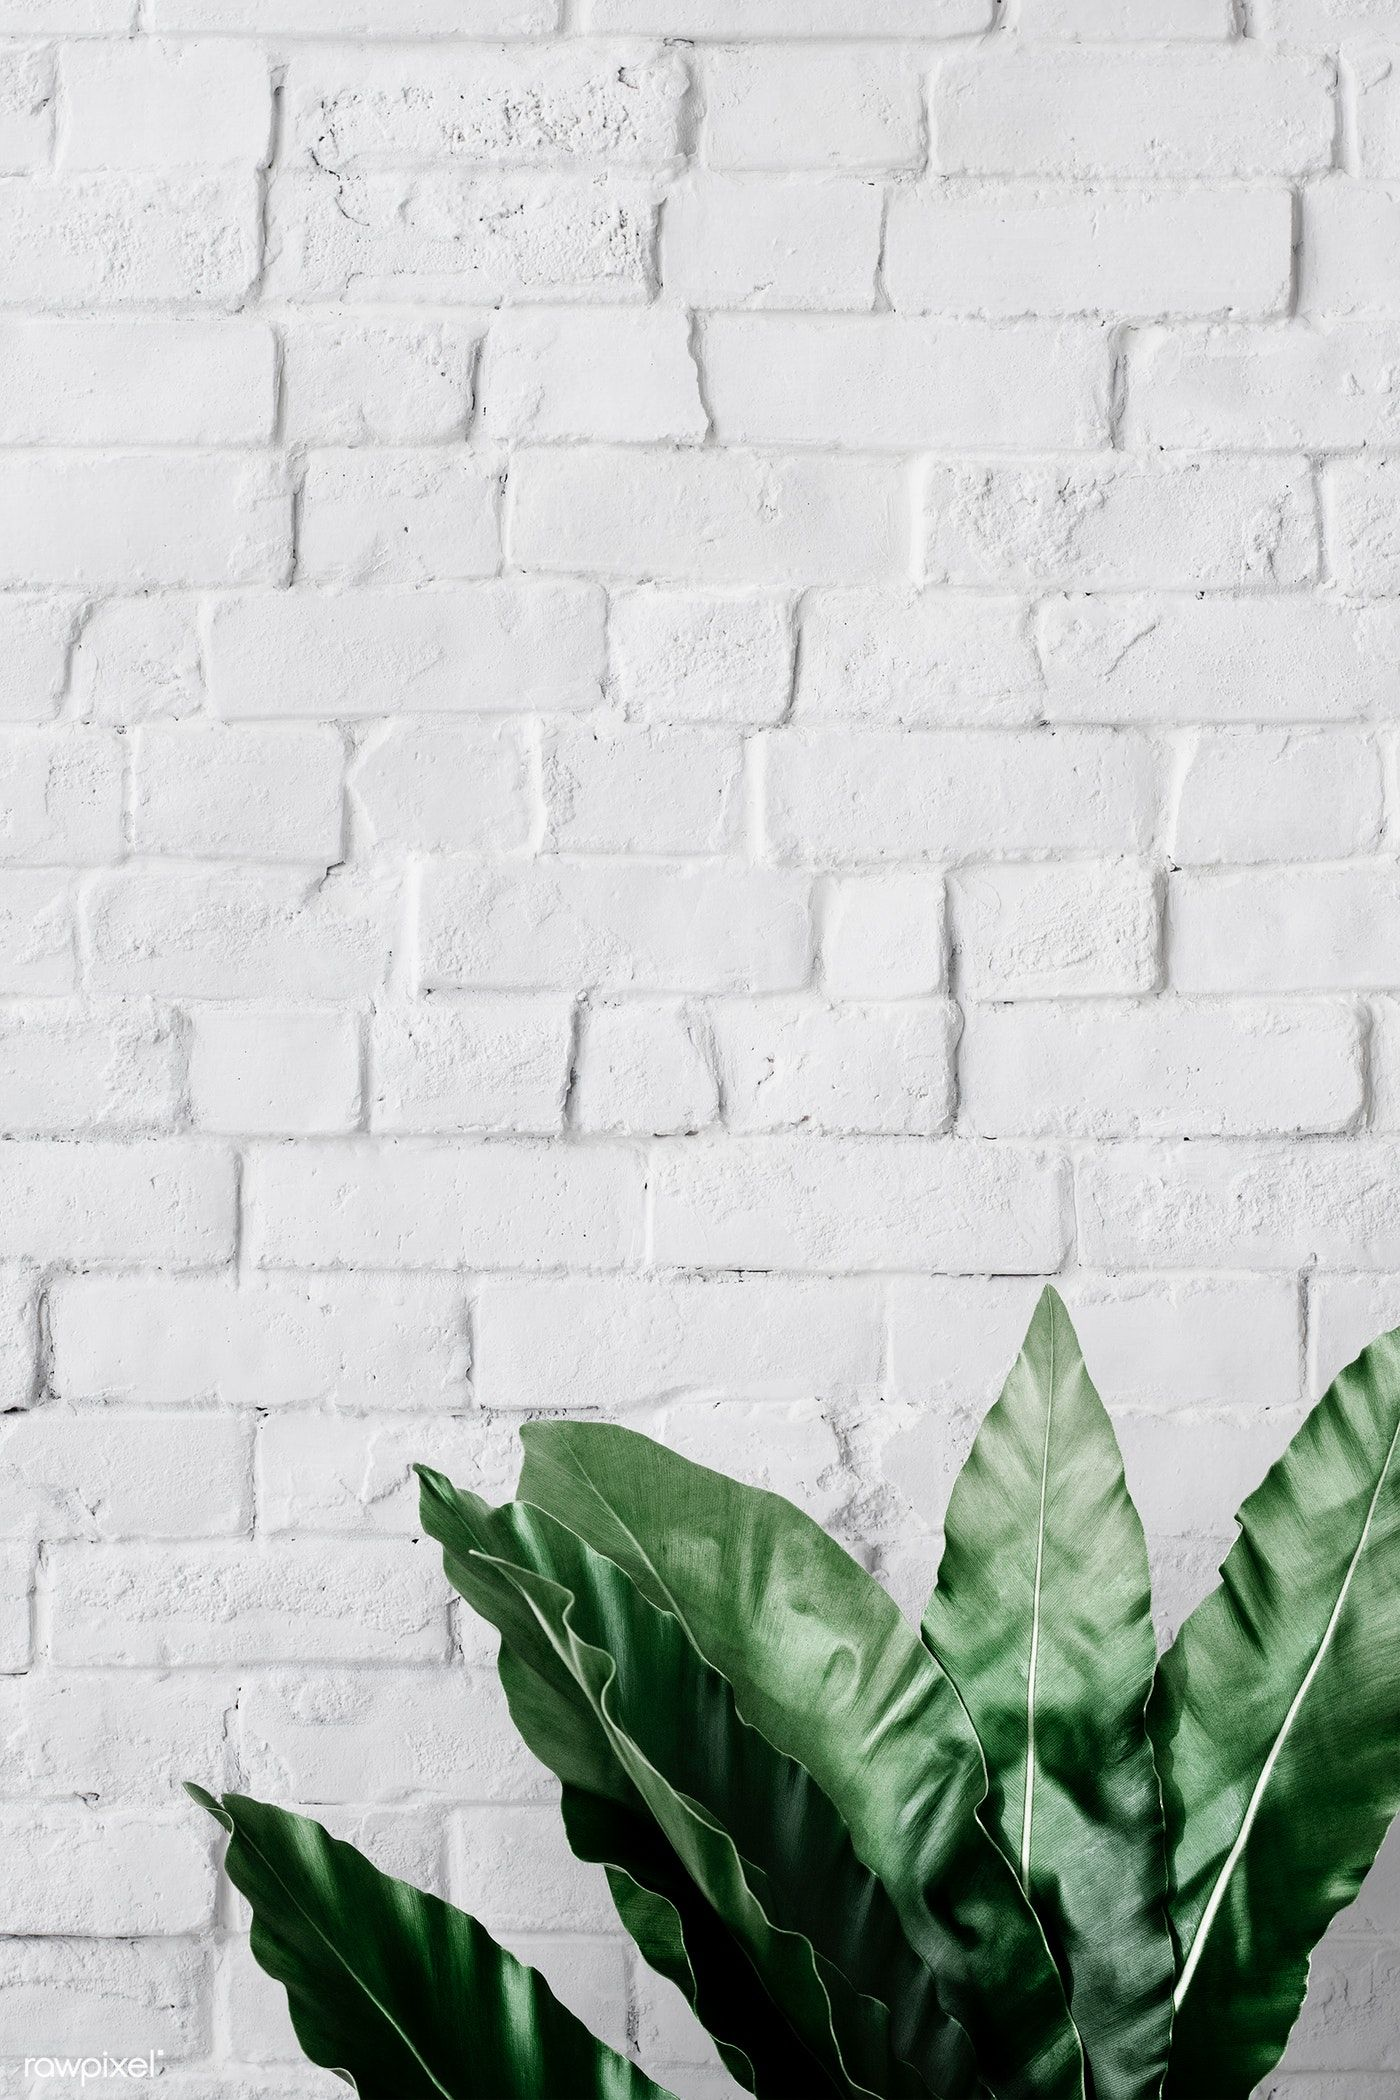 Download Premium Psd Of Bird S Nest Fern On White Brick Wall 556181 Brick Wallpaper Iphone White Brick Wallpaper White Brick Walls